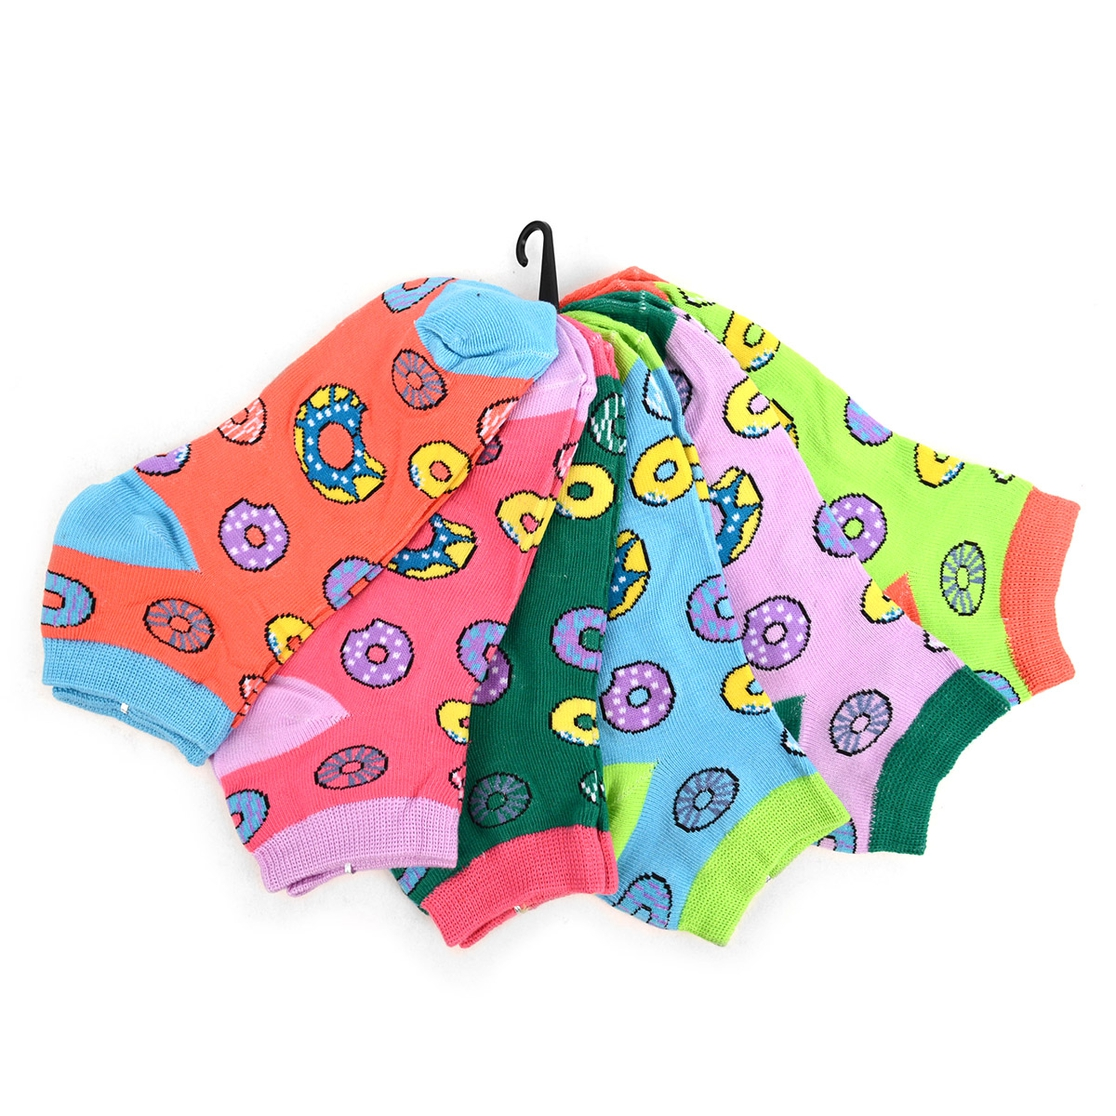 6 Pairs Women Donuts Socks - orangeshine.com